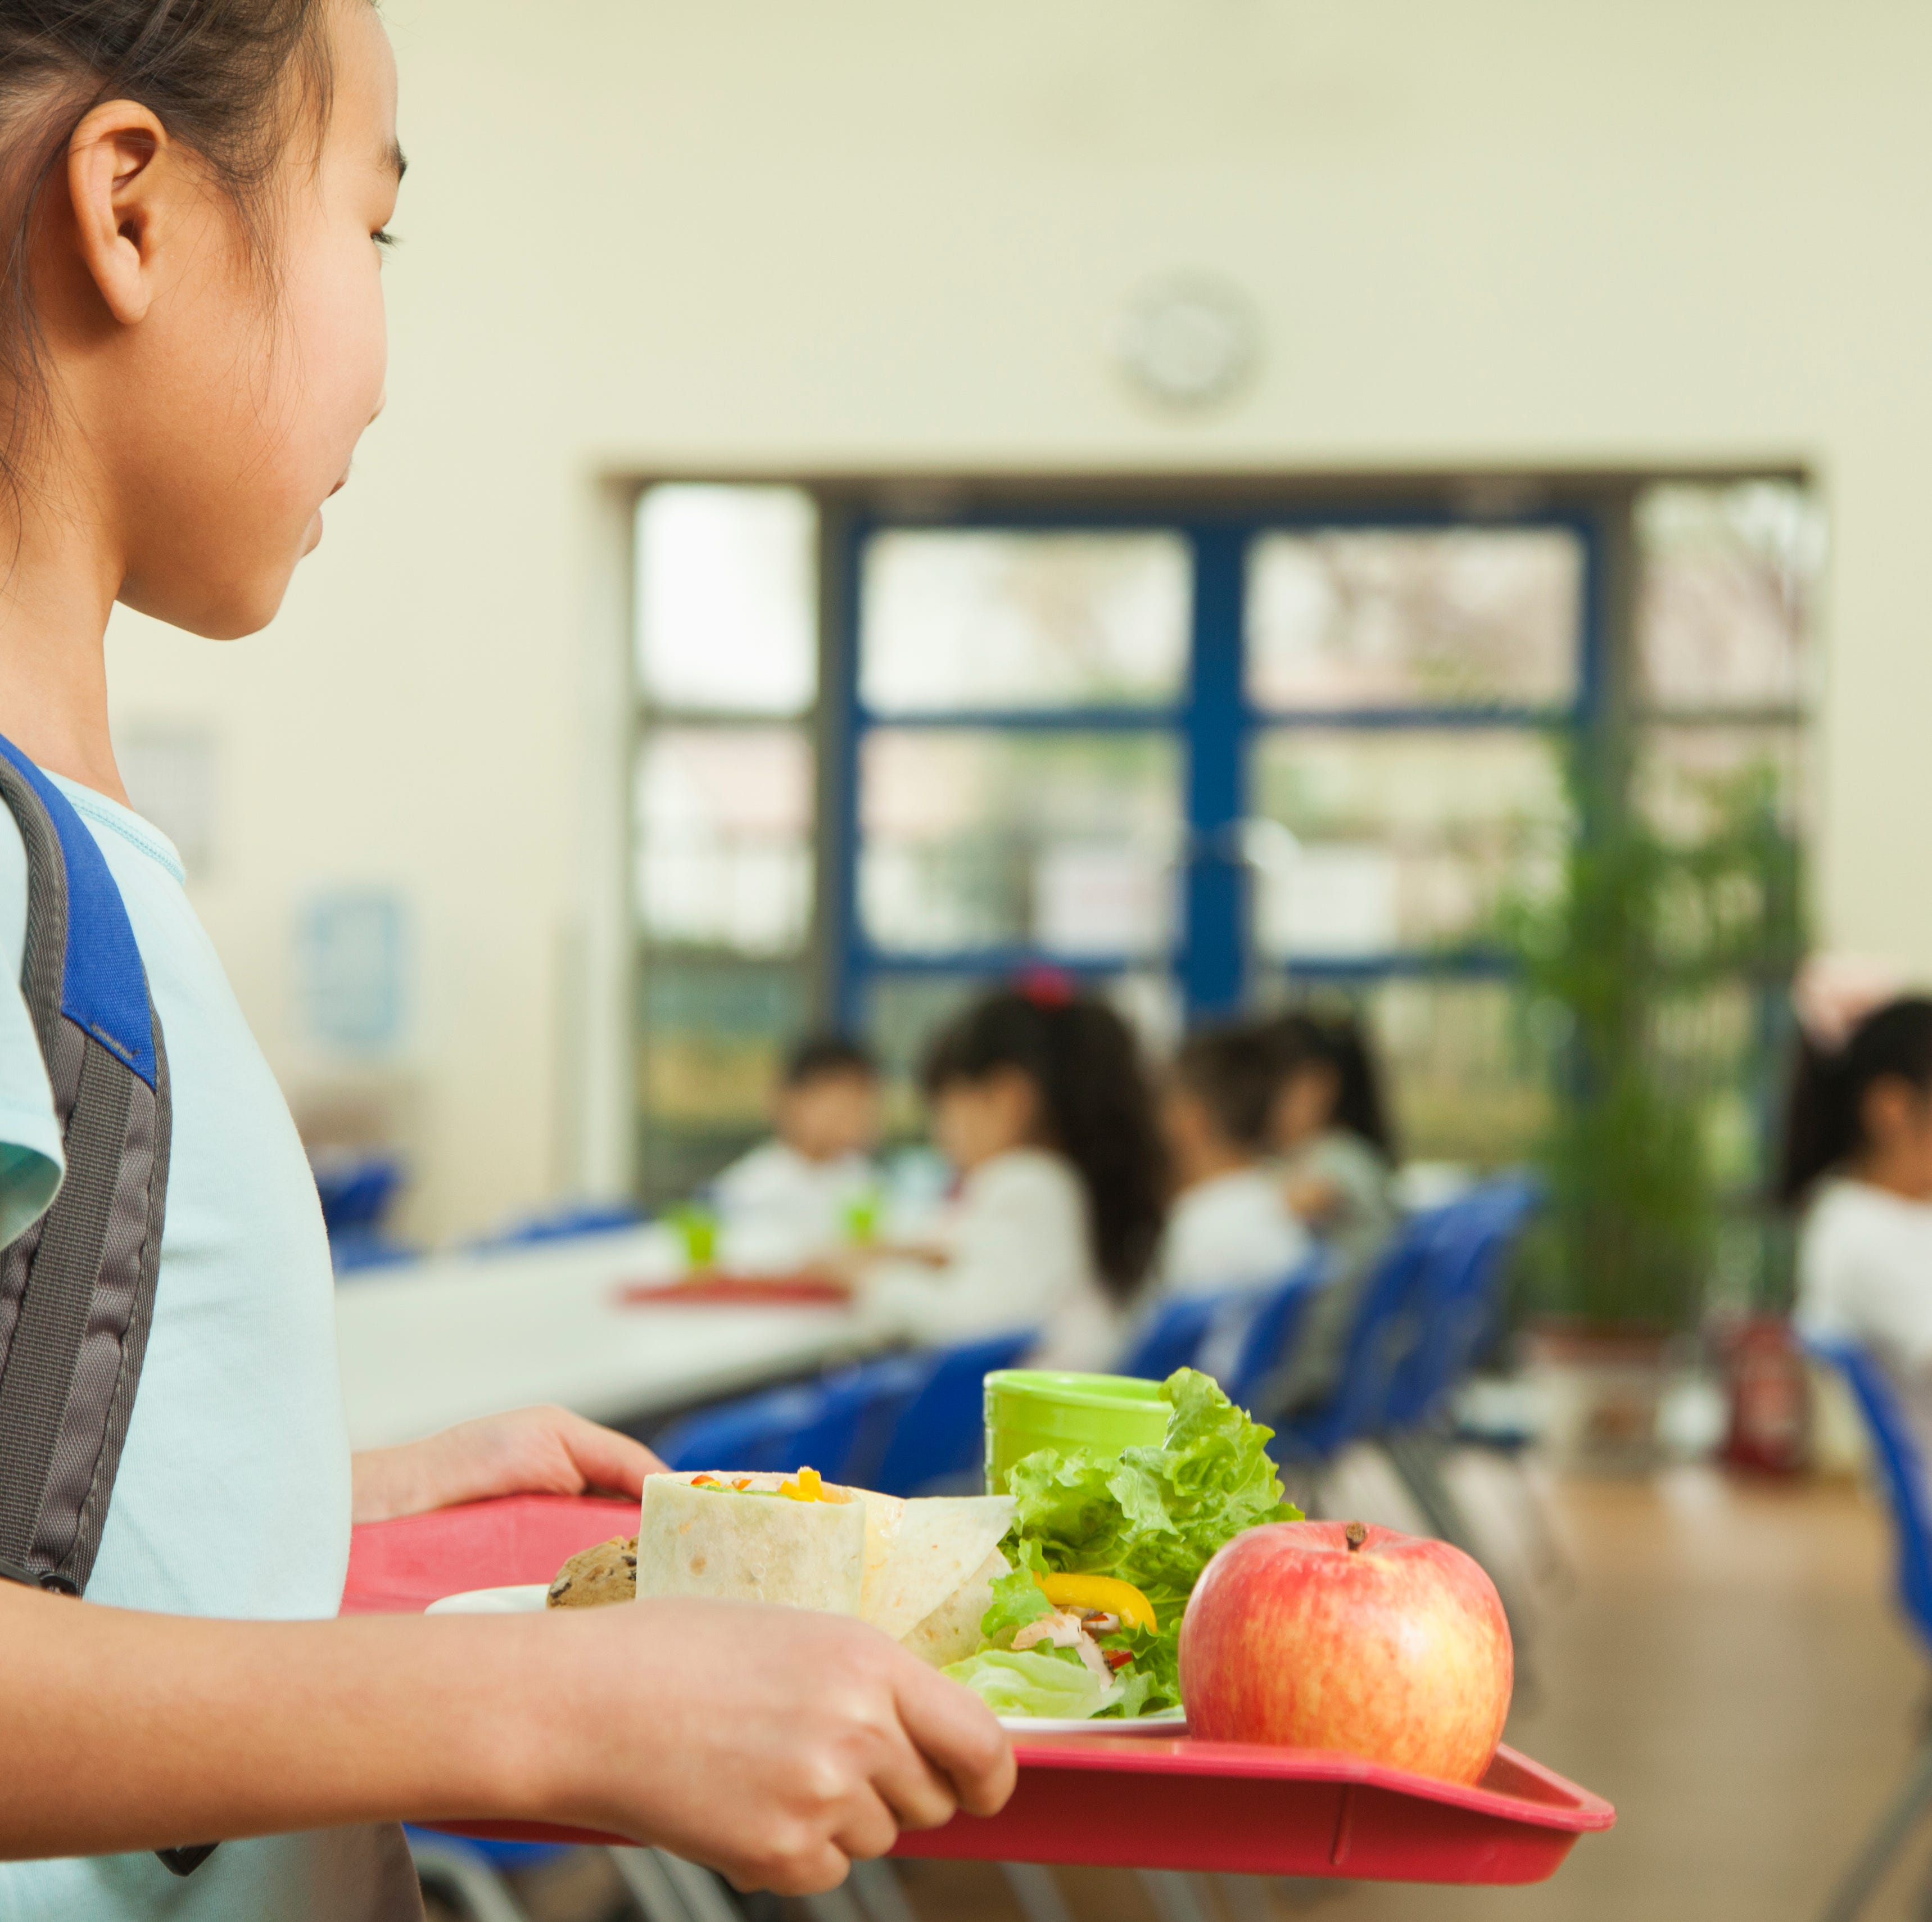 Report: Cashier throws away student's lunch after she was 15 cents short